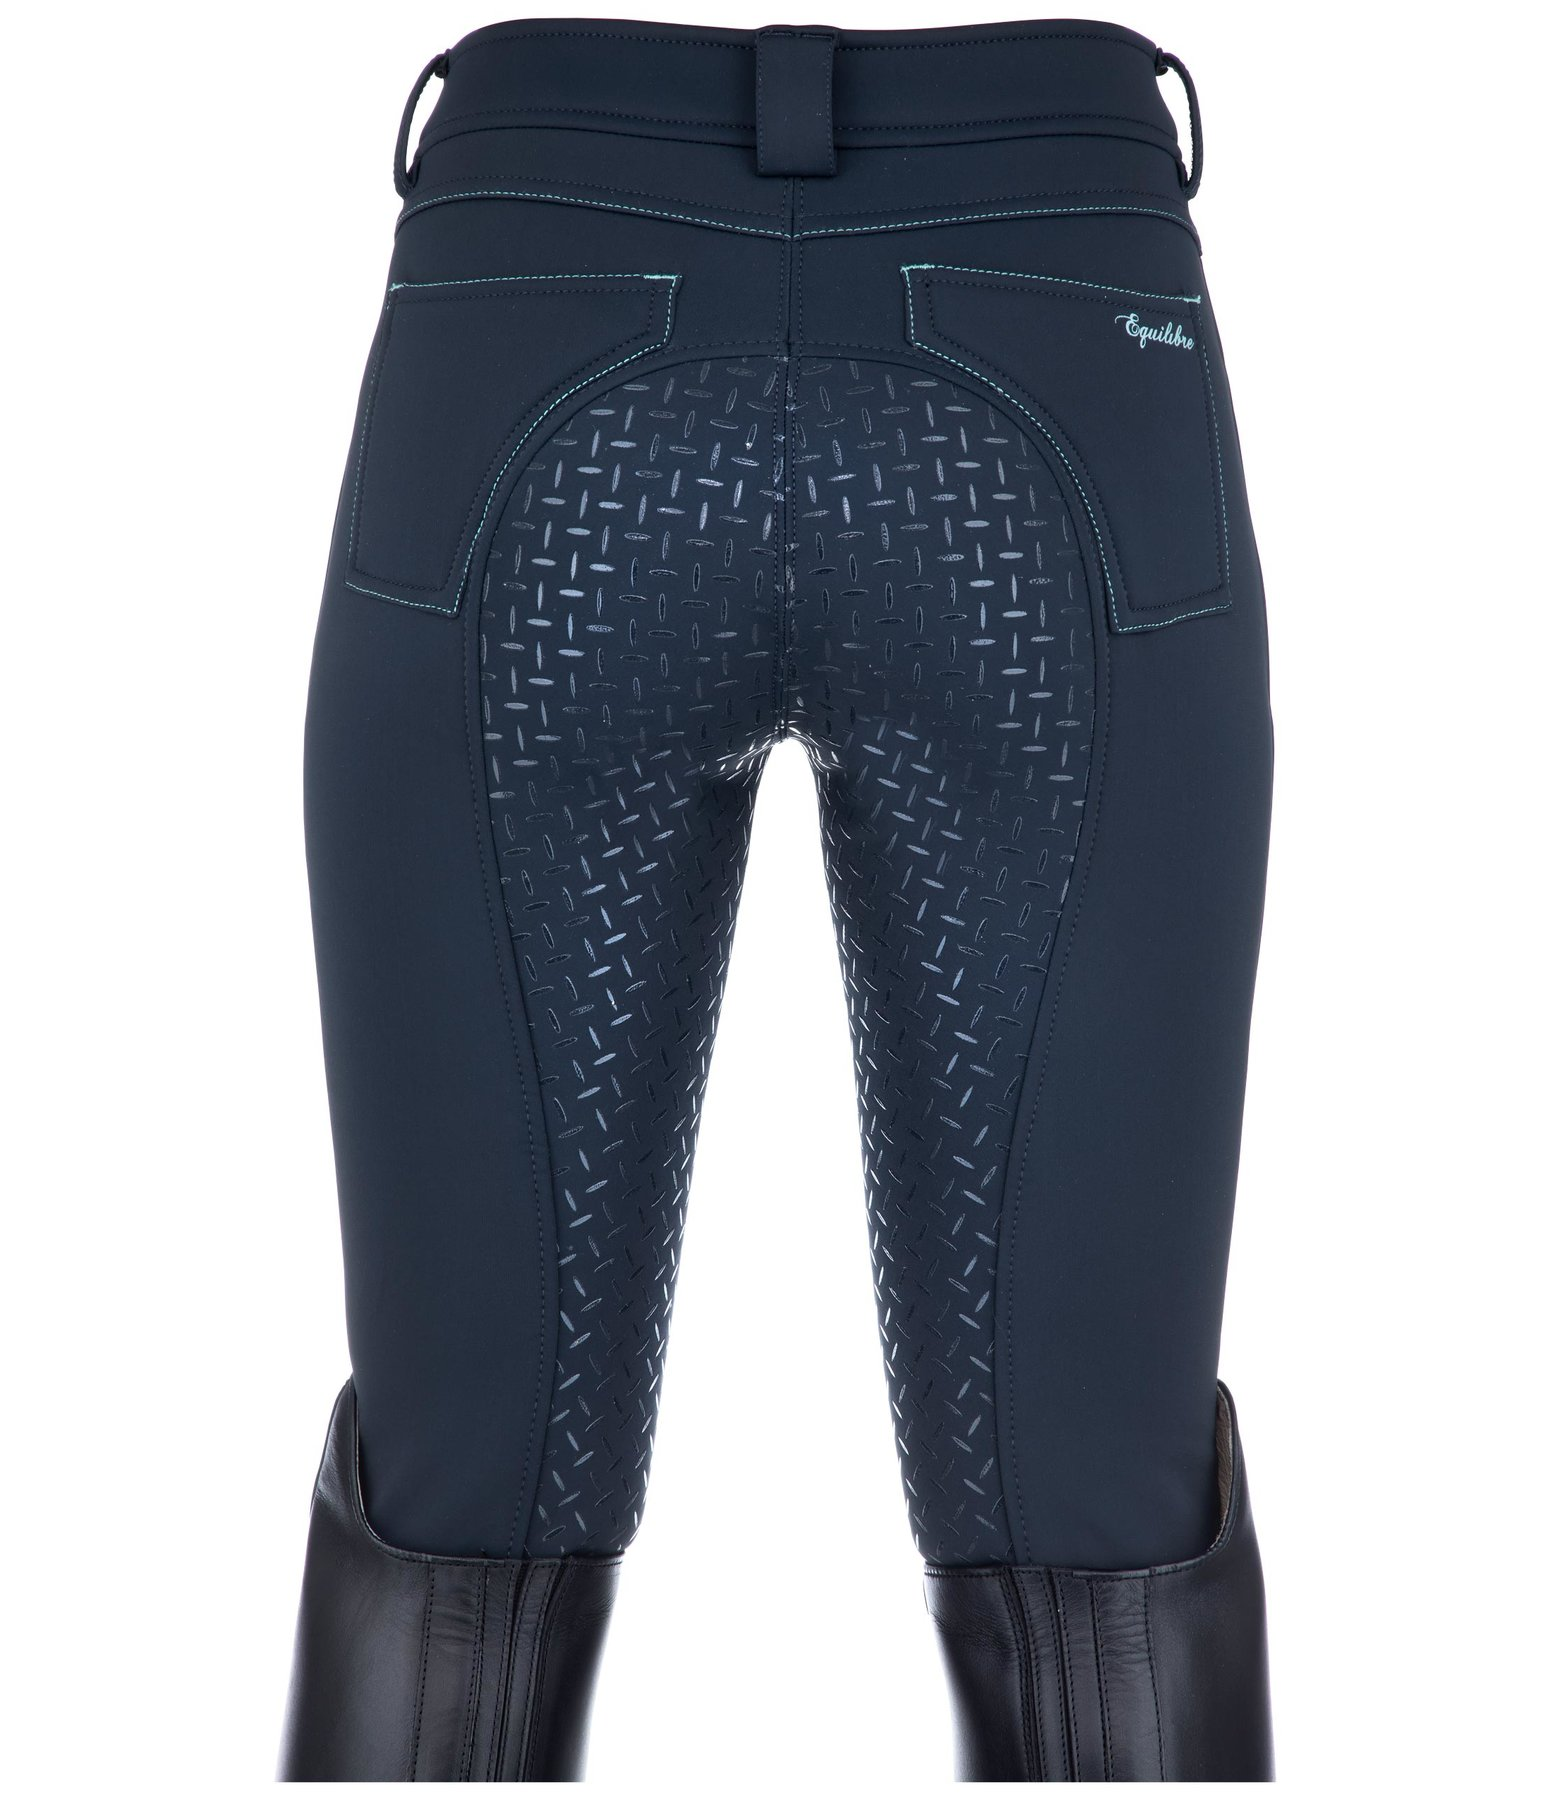 Children's Thermal Grip Full-Seat Breeches Malena